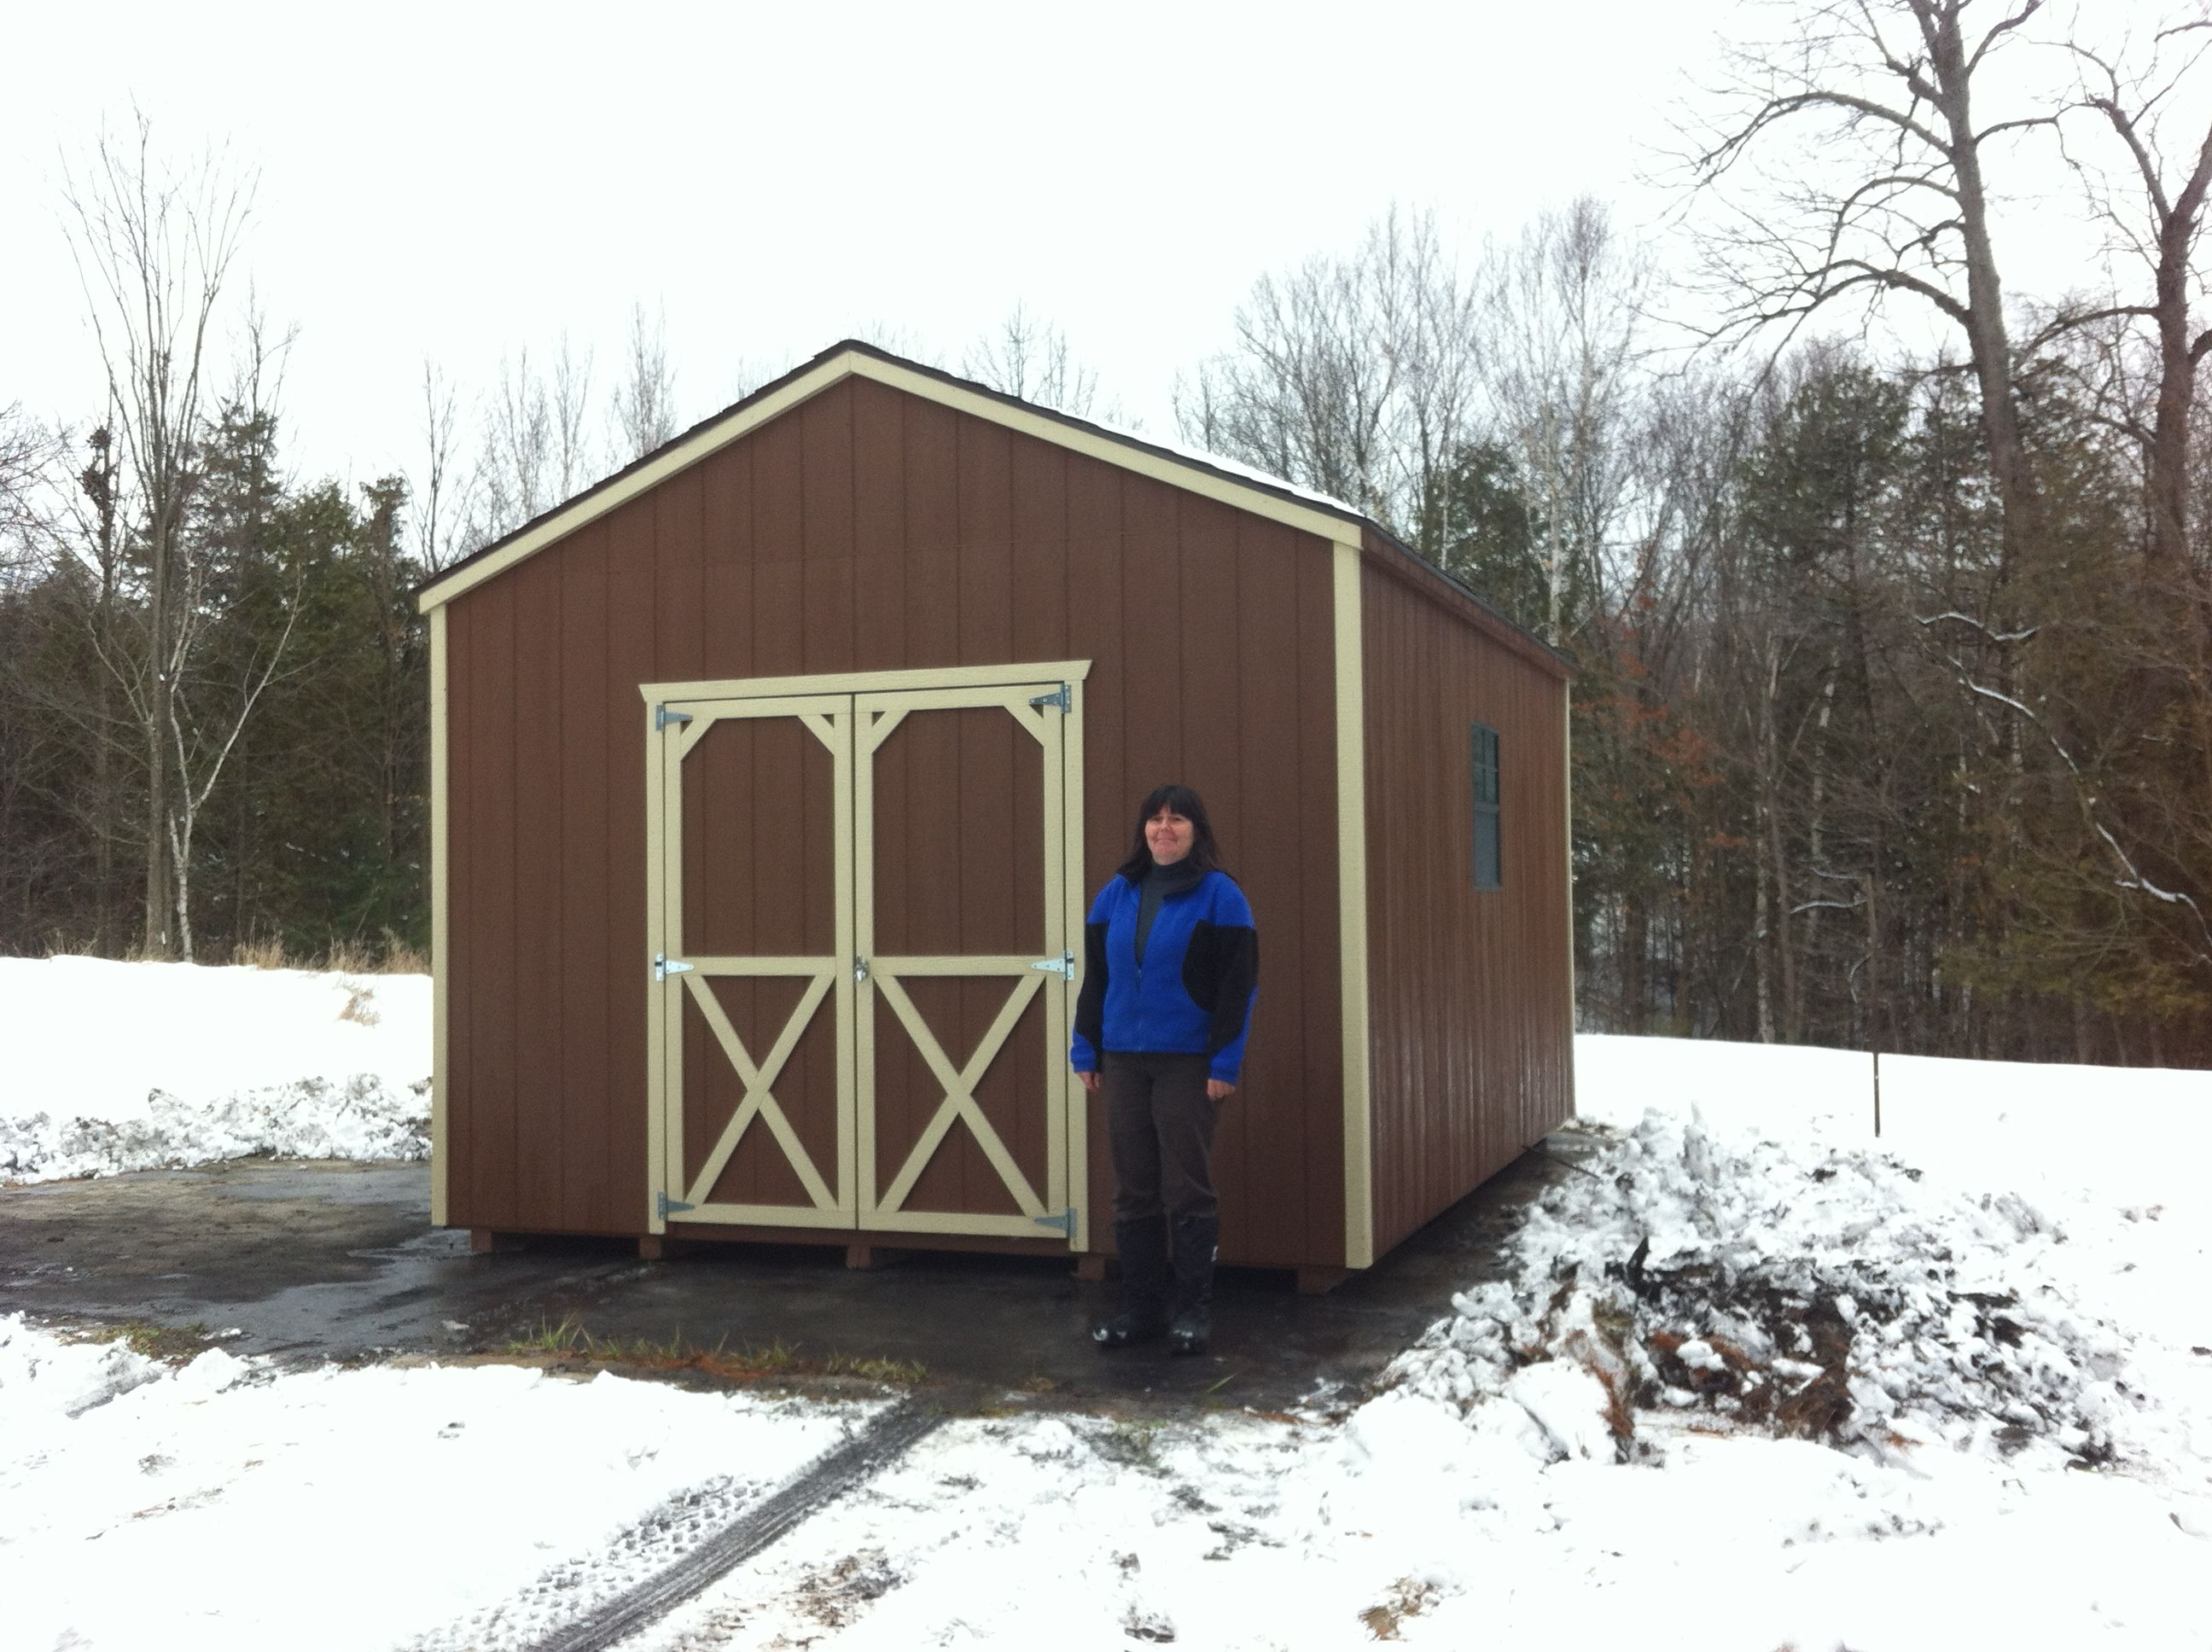 Find This Pin And More On Prefab Garden Sheds.